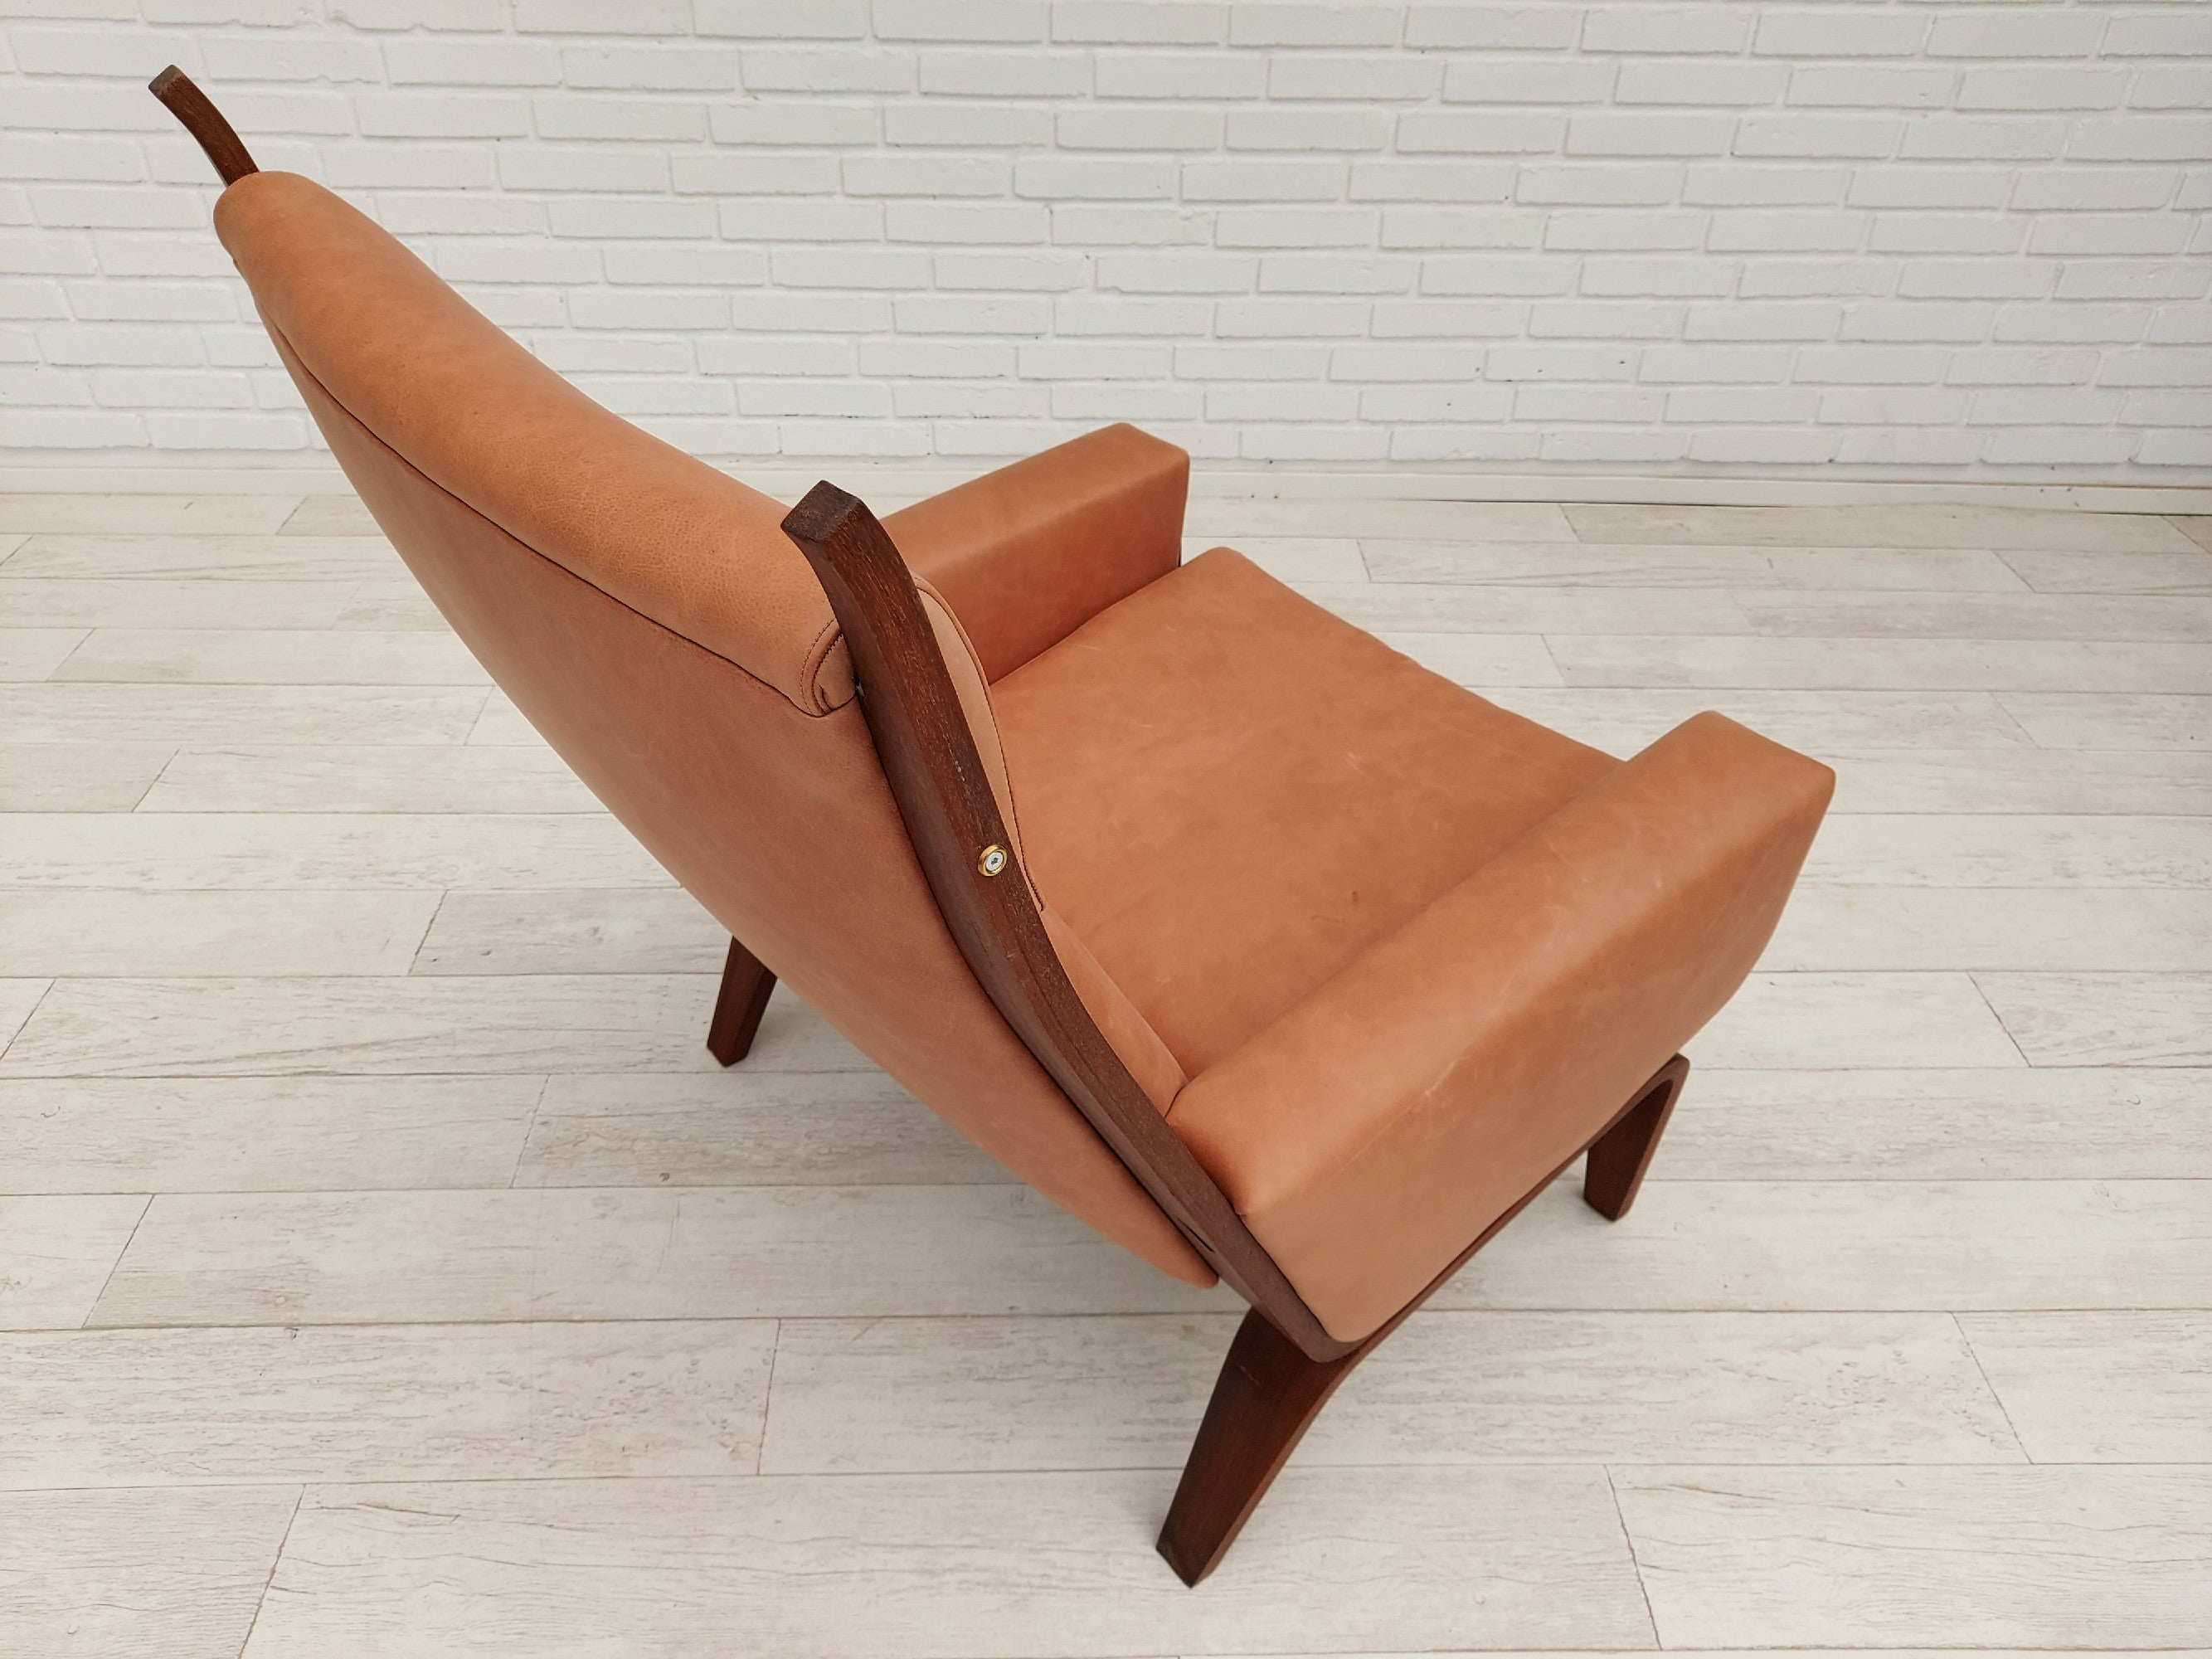 HJWegner, GE 501a, mahogany wood, 70s, leather, totally renovated